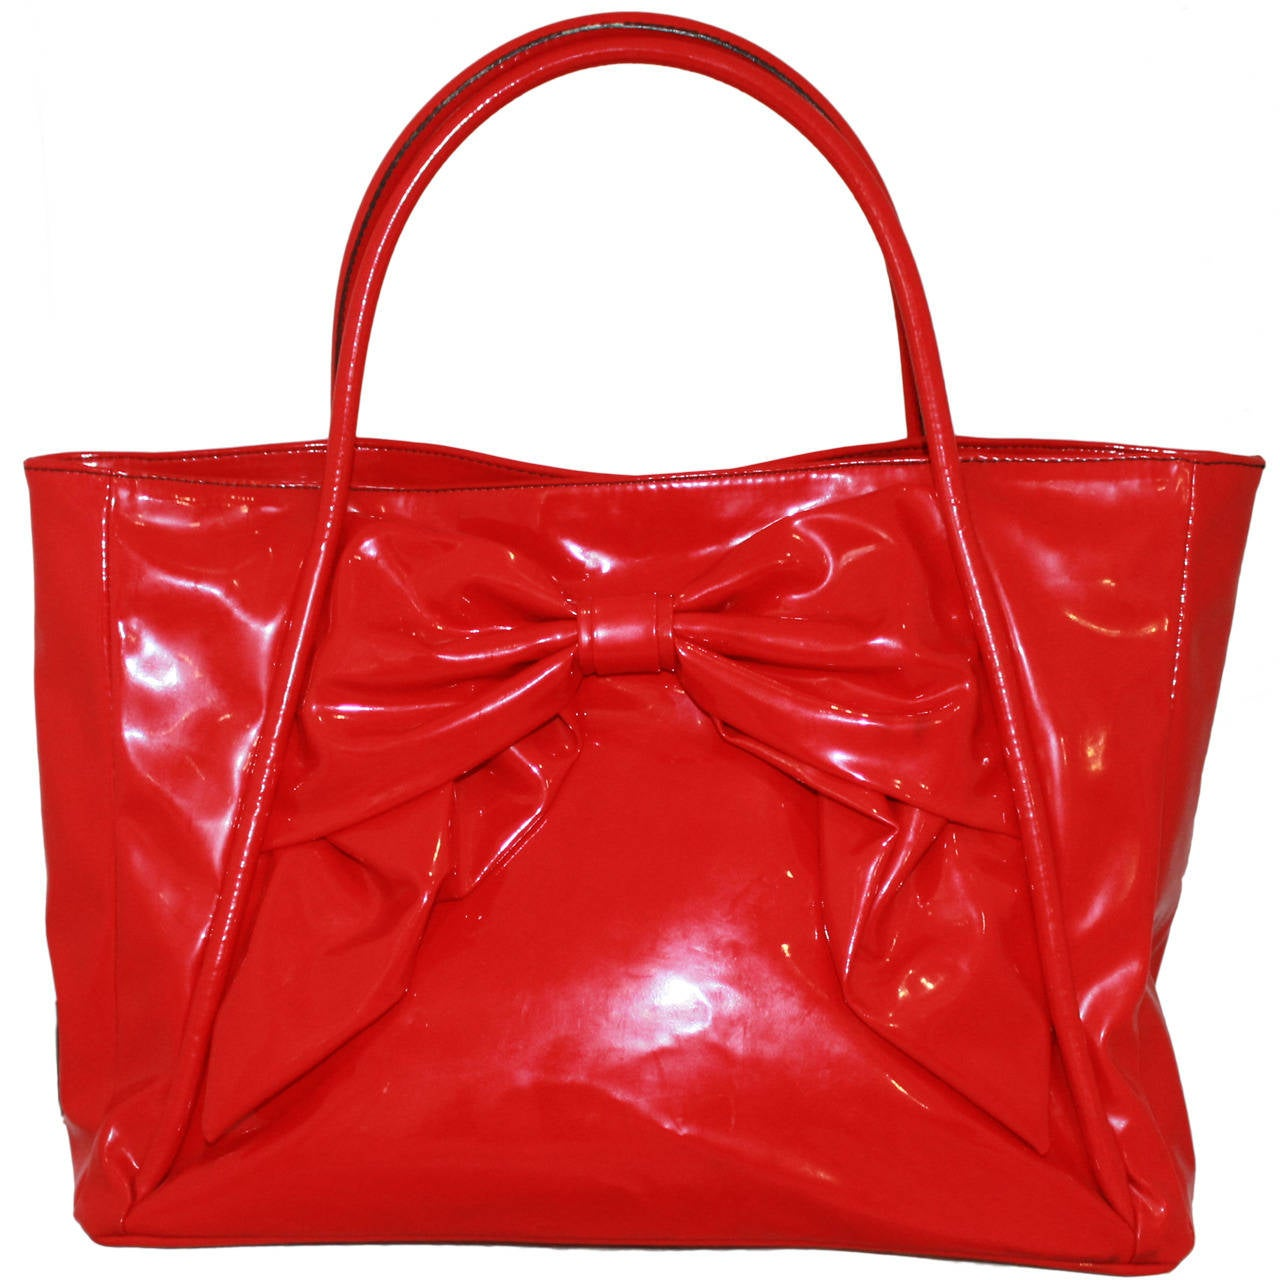 Valentino Red Plastic Bow Bag 1